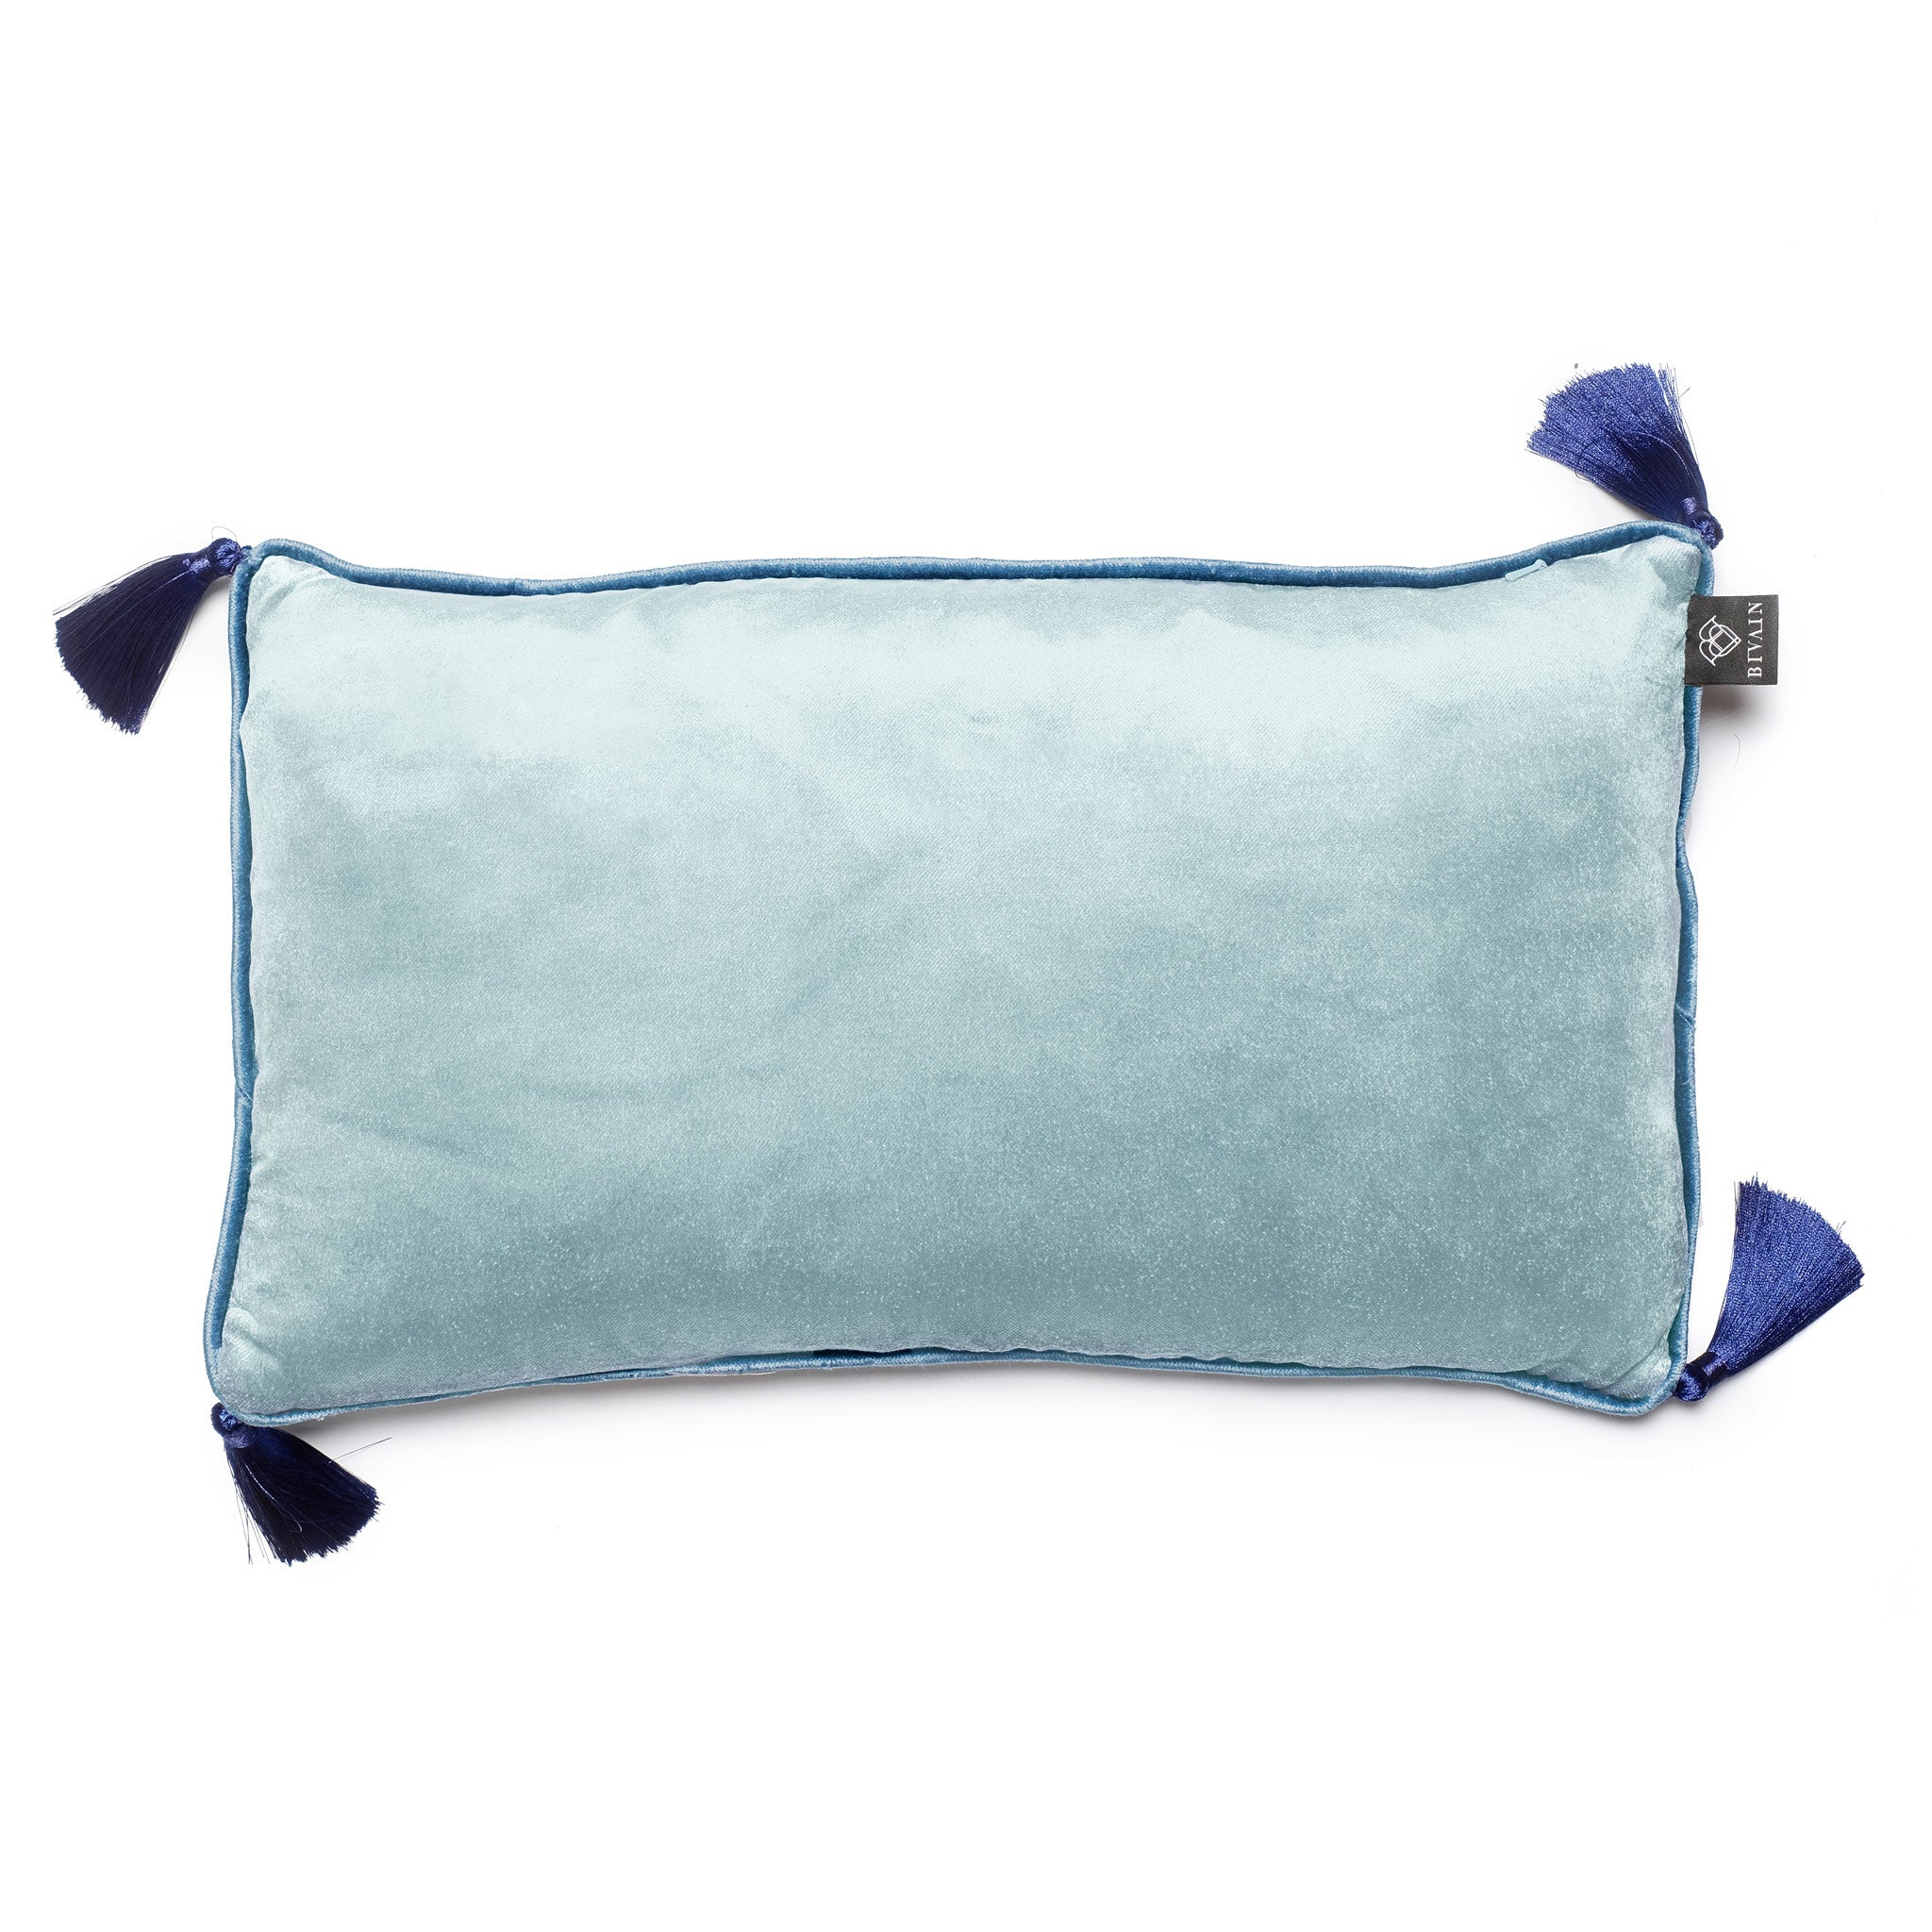 Ice Blue Jade Velvet Rectangular Cushion with Tassels